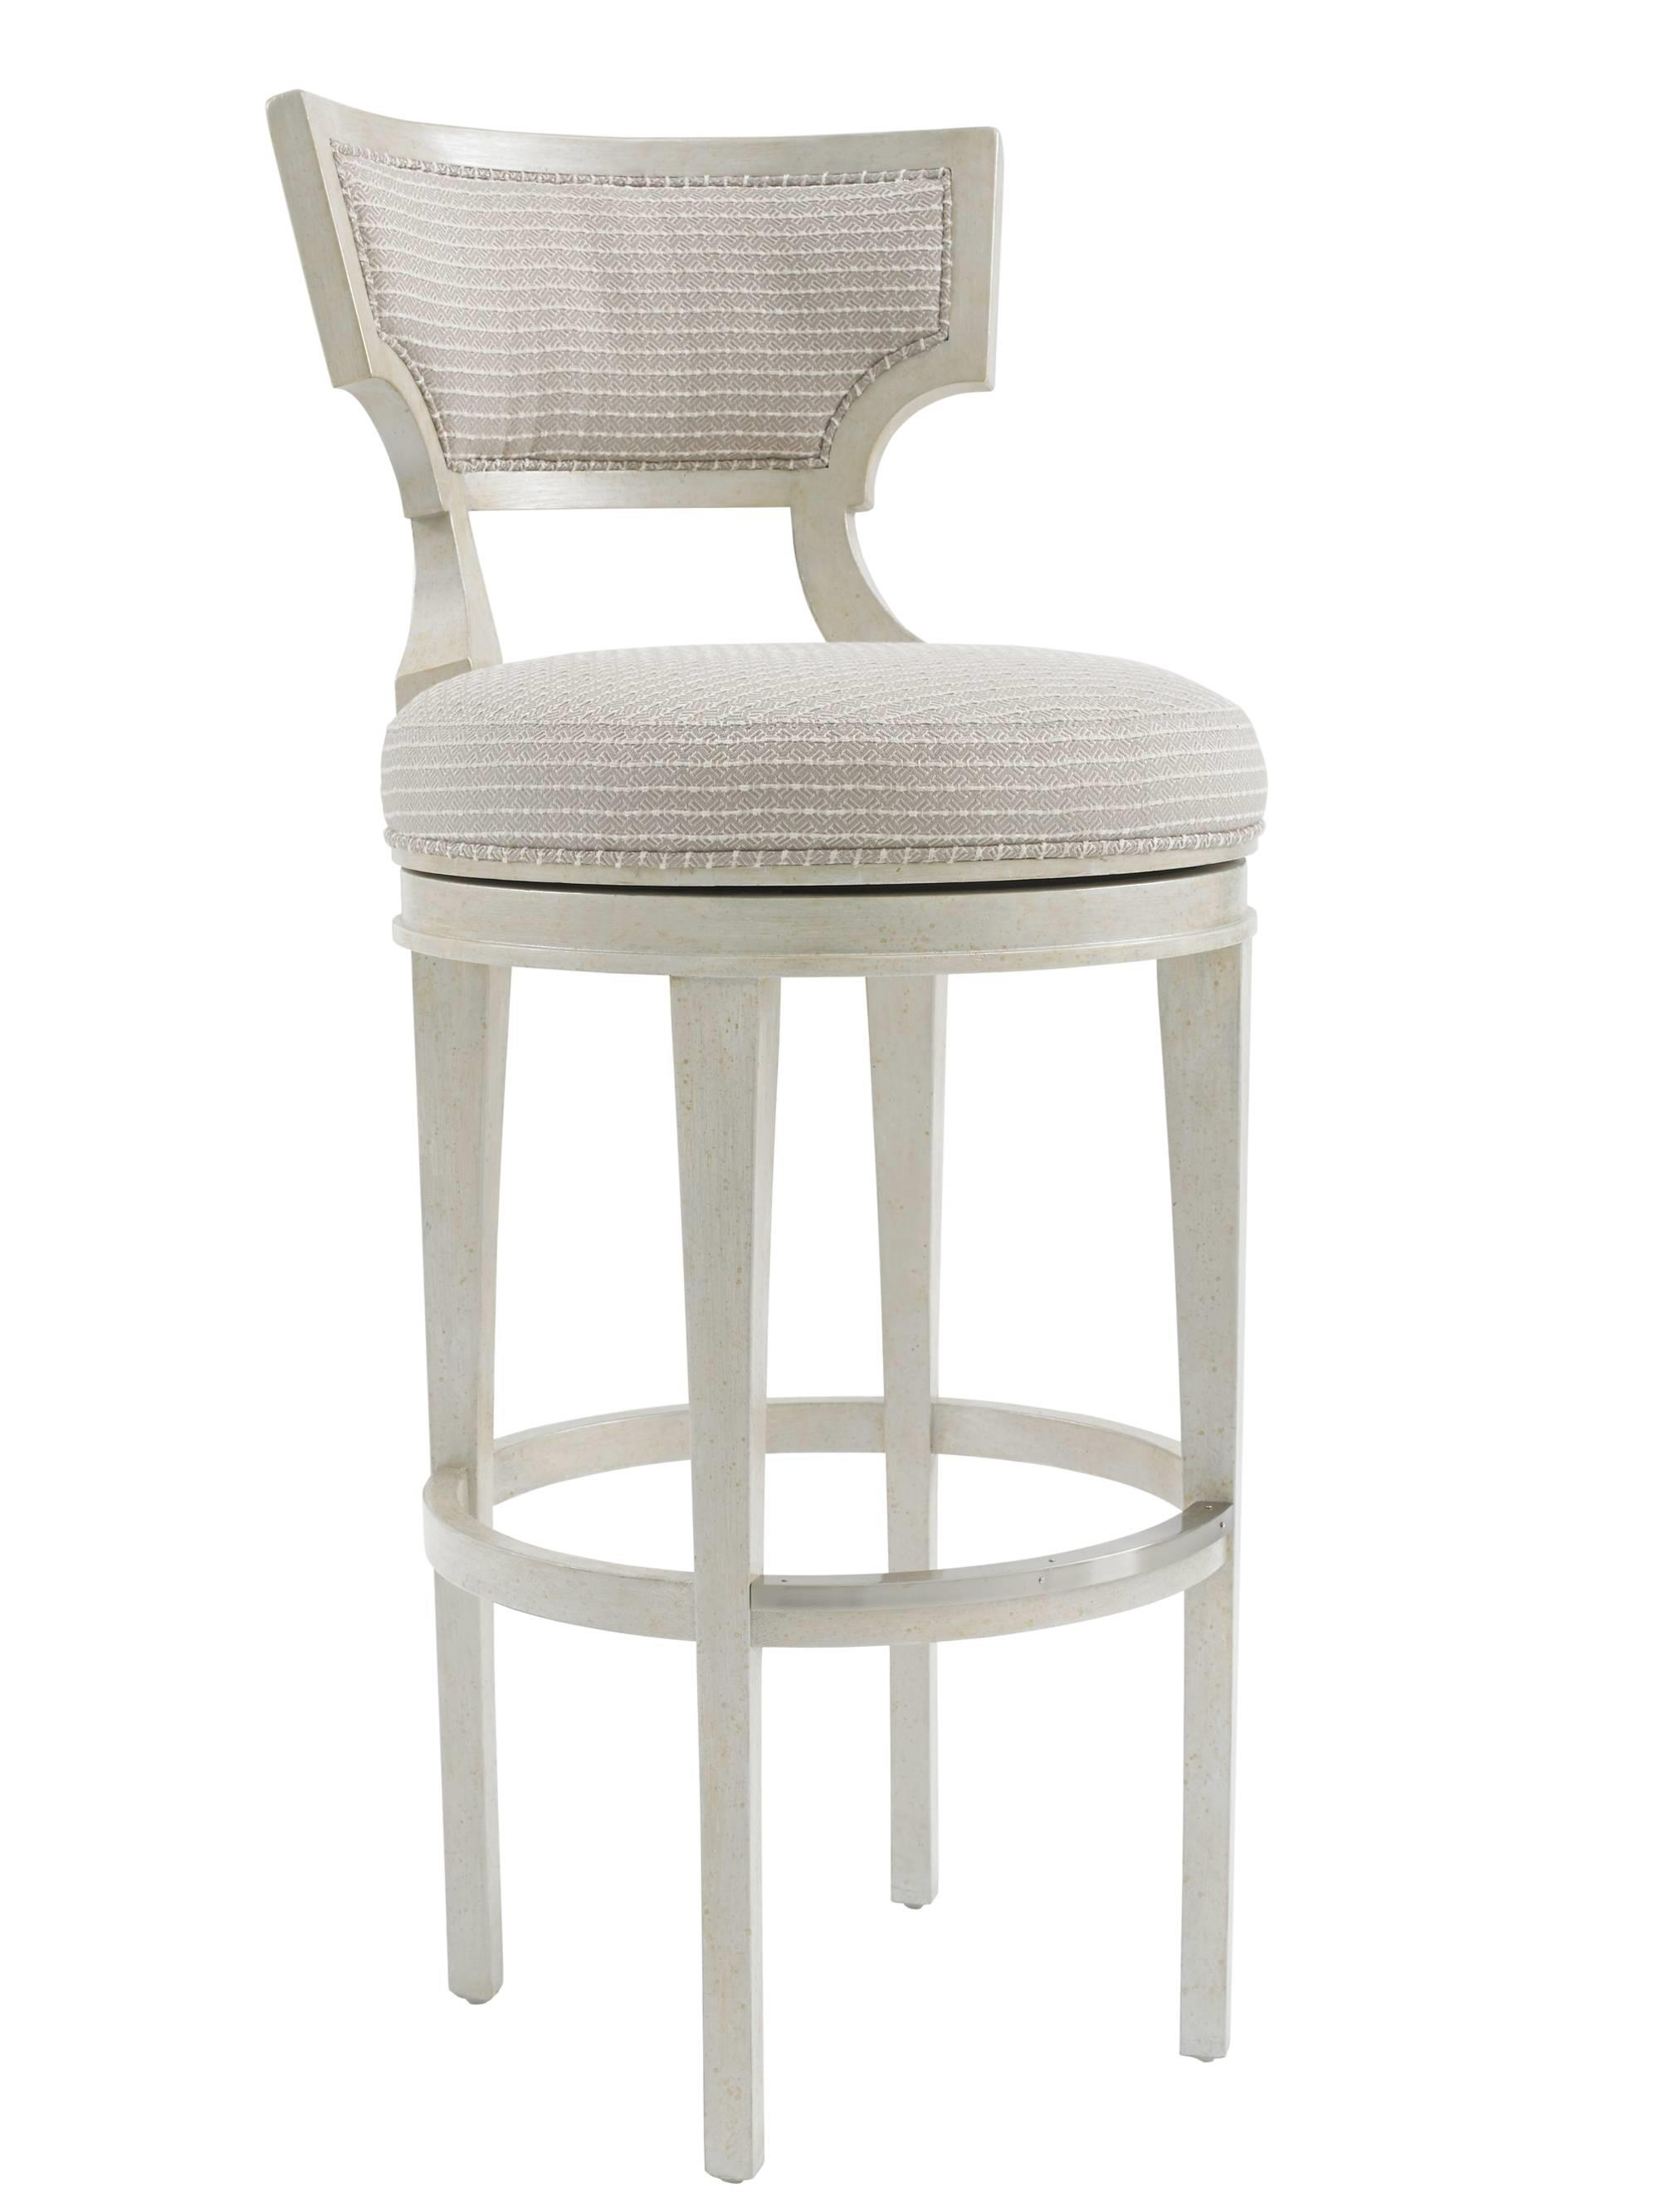 Stanley Furniture Fairlane Bar Stool - Item Number: 417-21-73